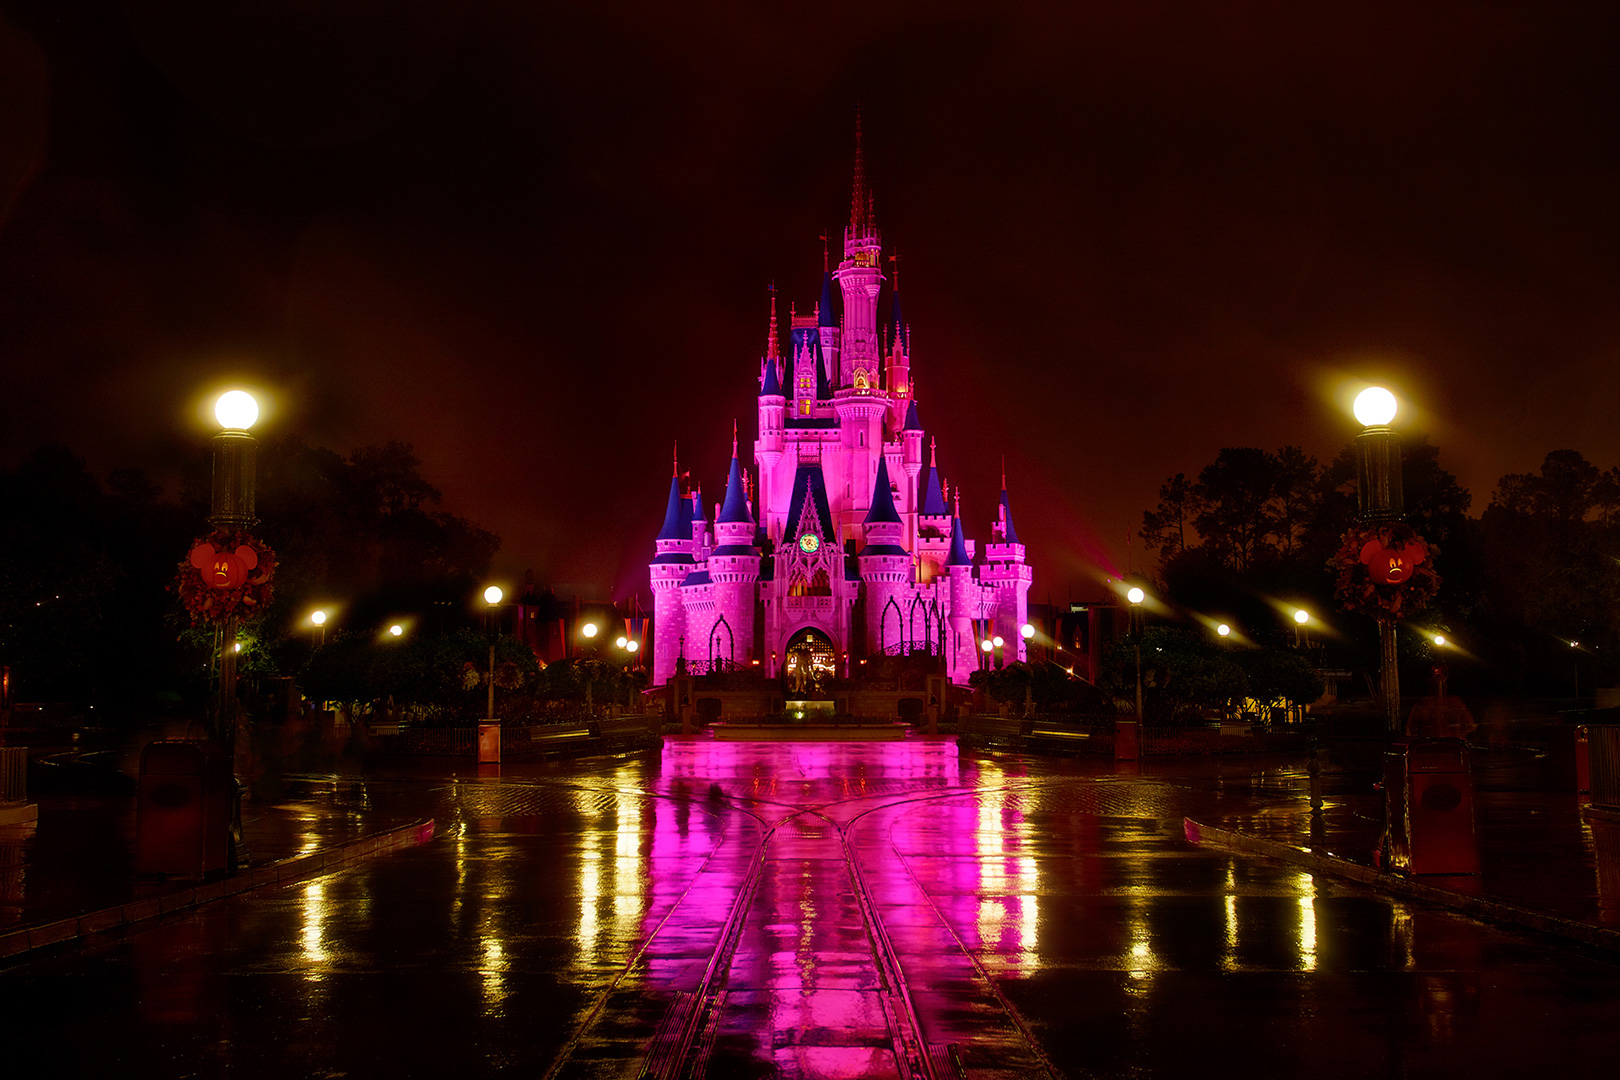 Disney Photography, Disney World Photography, Disneyland Photography, Disney Photos, Disney Pictures, Walt Disney World, The Magic Kingdom, Walt Disney, Mickey Mouse, Orlando, Florida, Theme Park,  Cindarella Castle